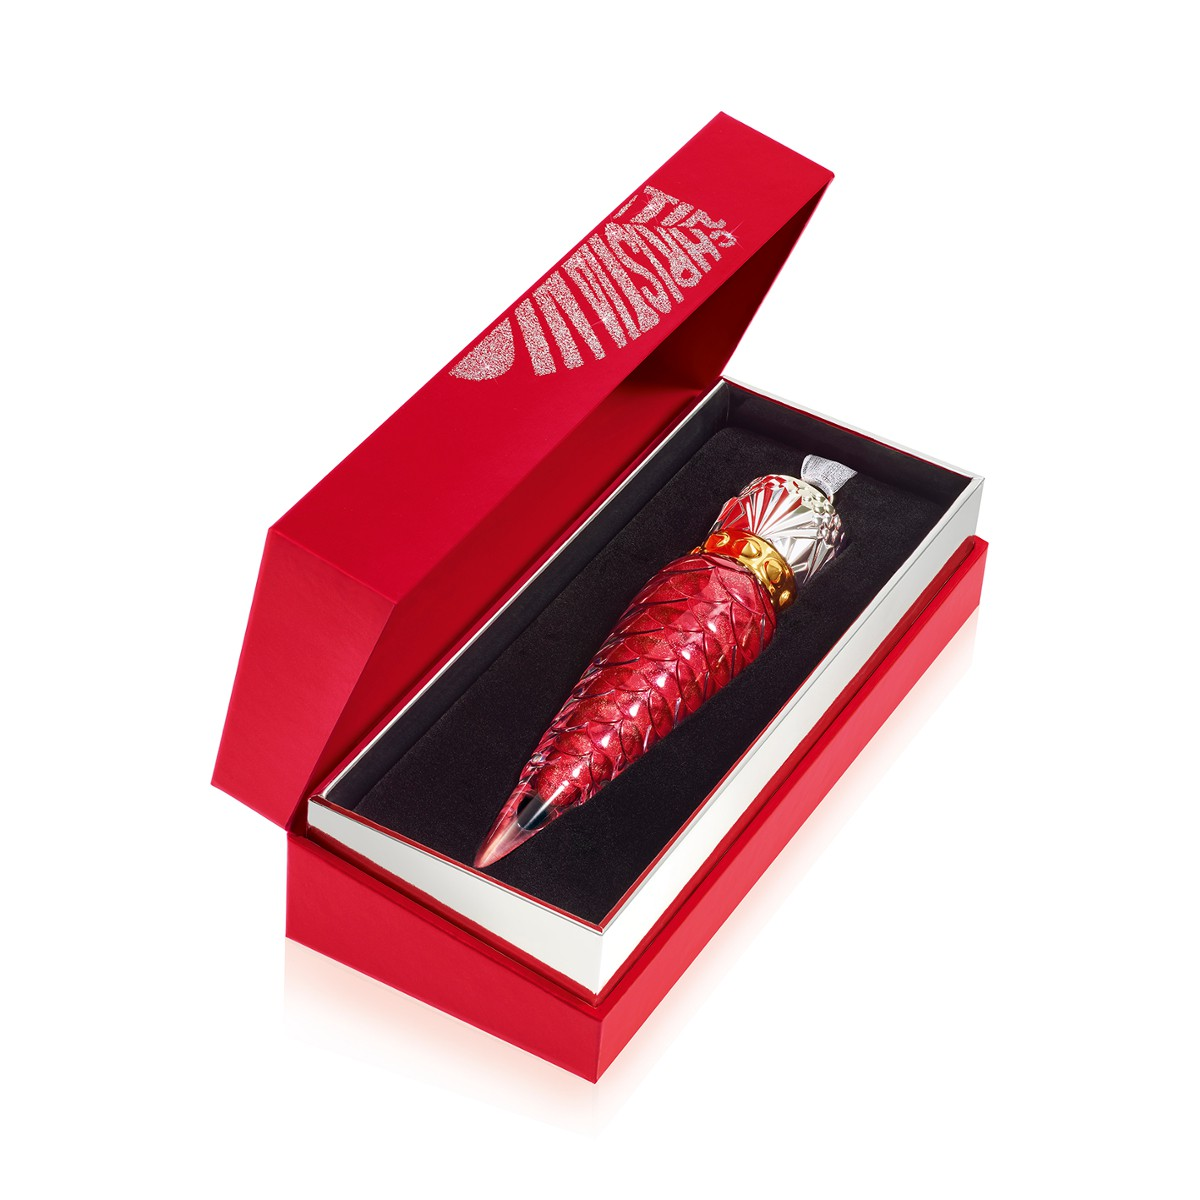 Beauty - Rouge Louboutin - Christian Louboutin